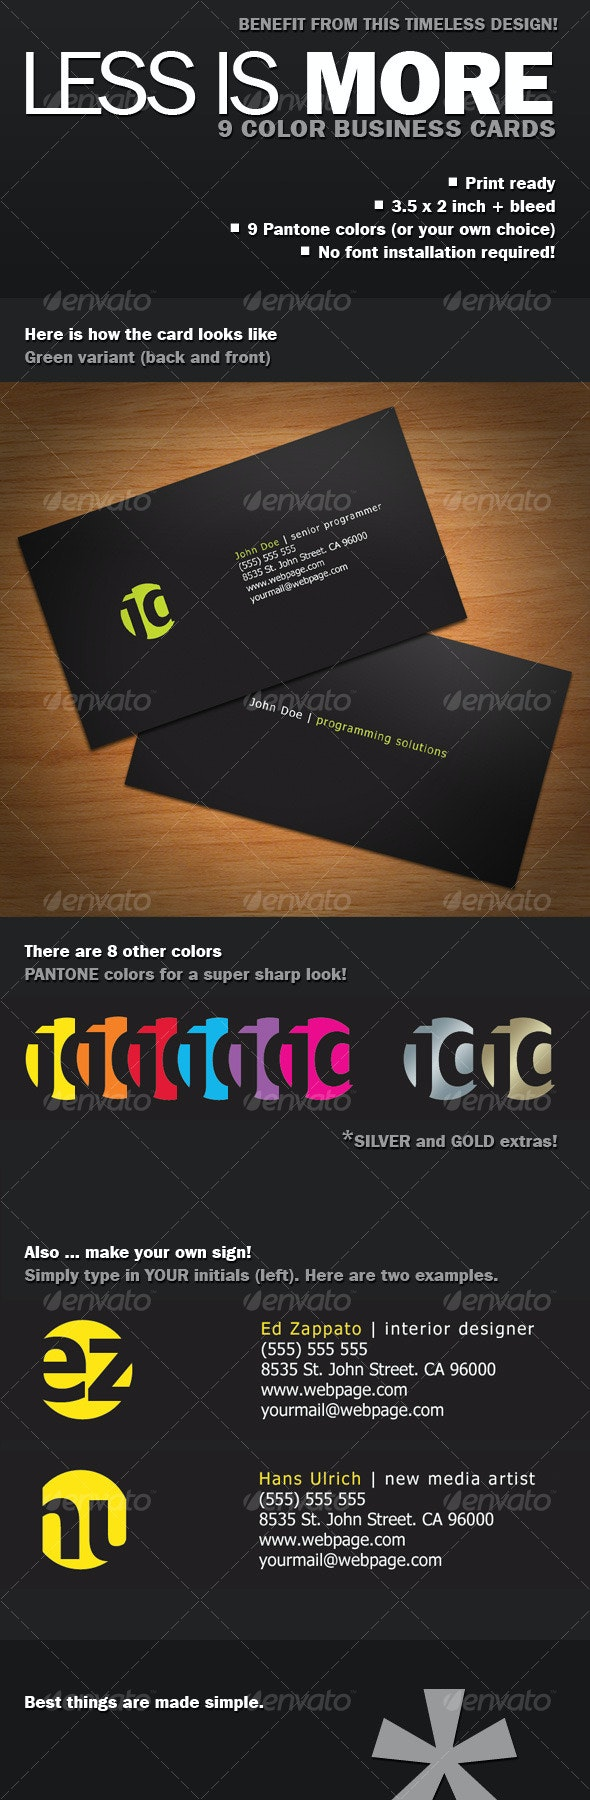 Less Is More Business Card - Corporate Business Cards